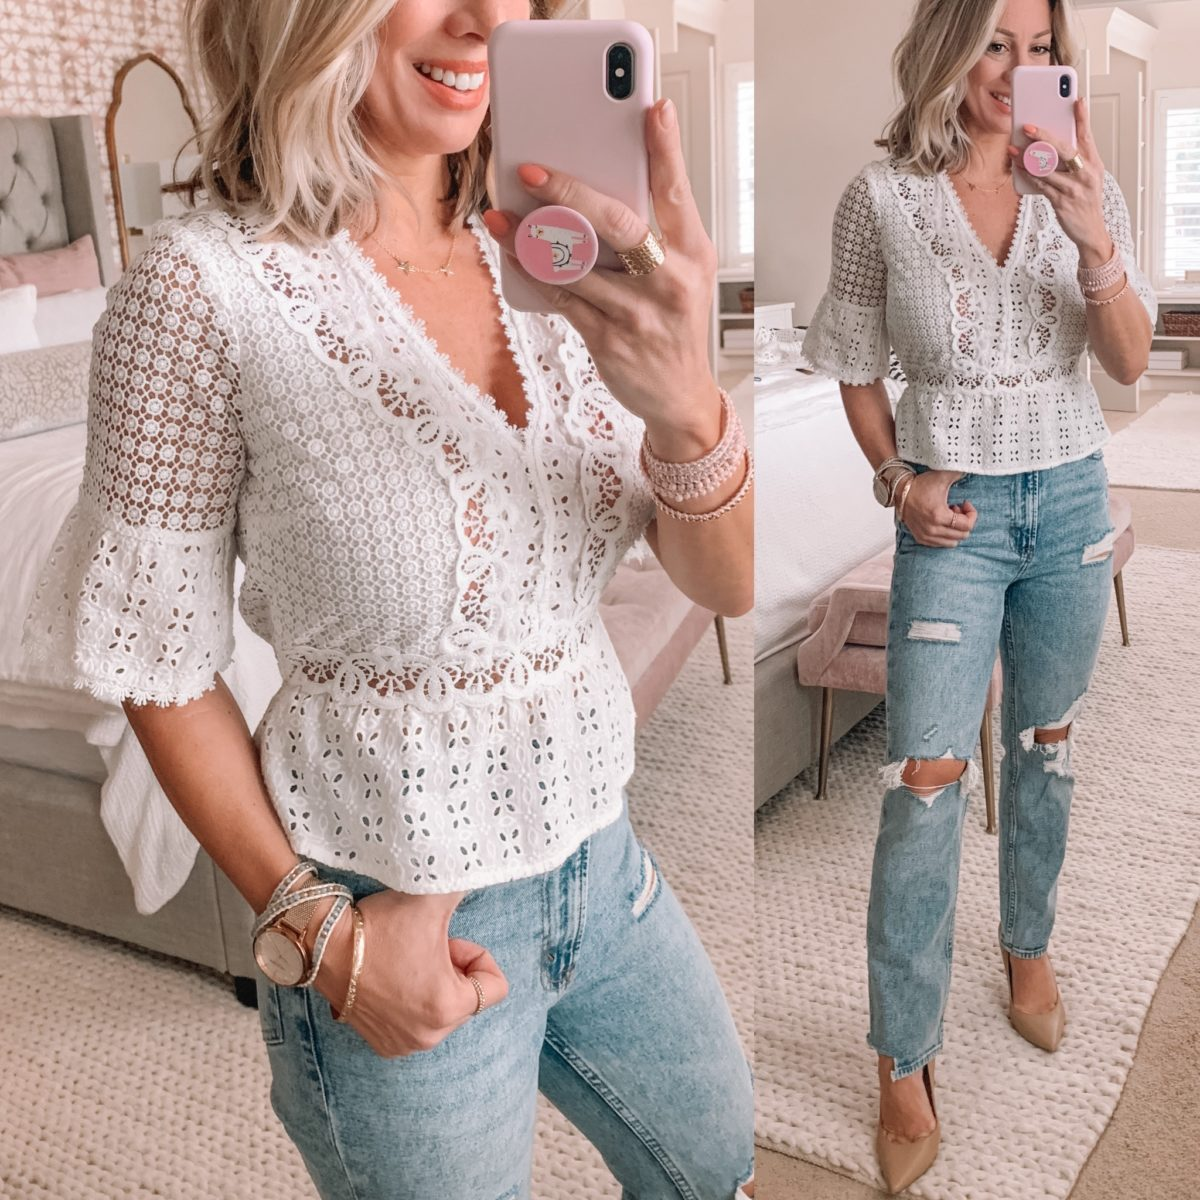 White Lace Peplum Top, Distressed Jeans, Nude Heels